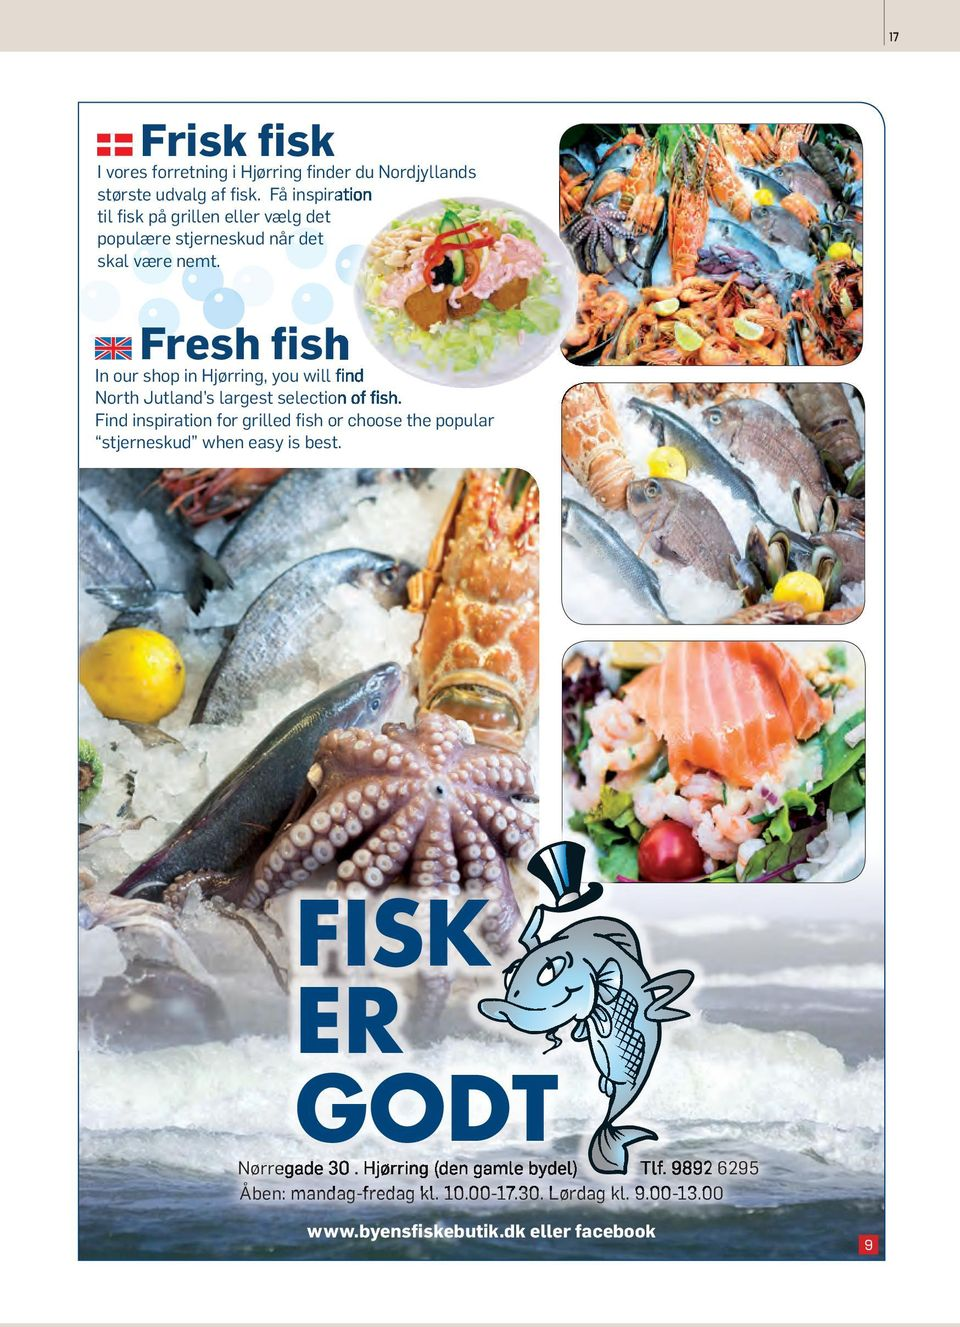 Fresh fish In our shop in Hjørring, you will find North Jutland s largest selection of fish.